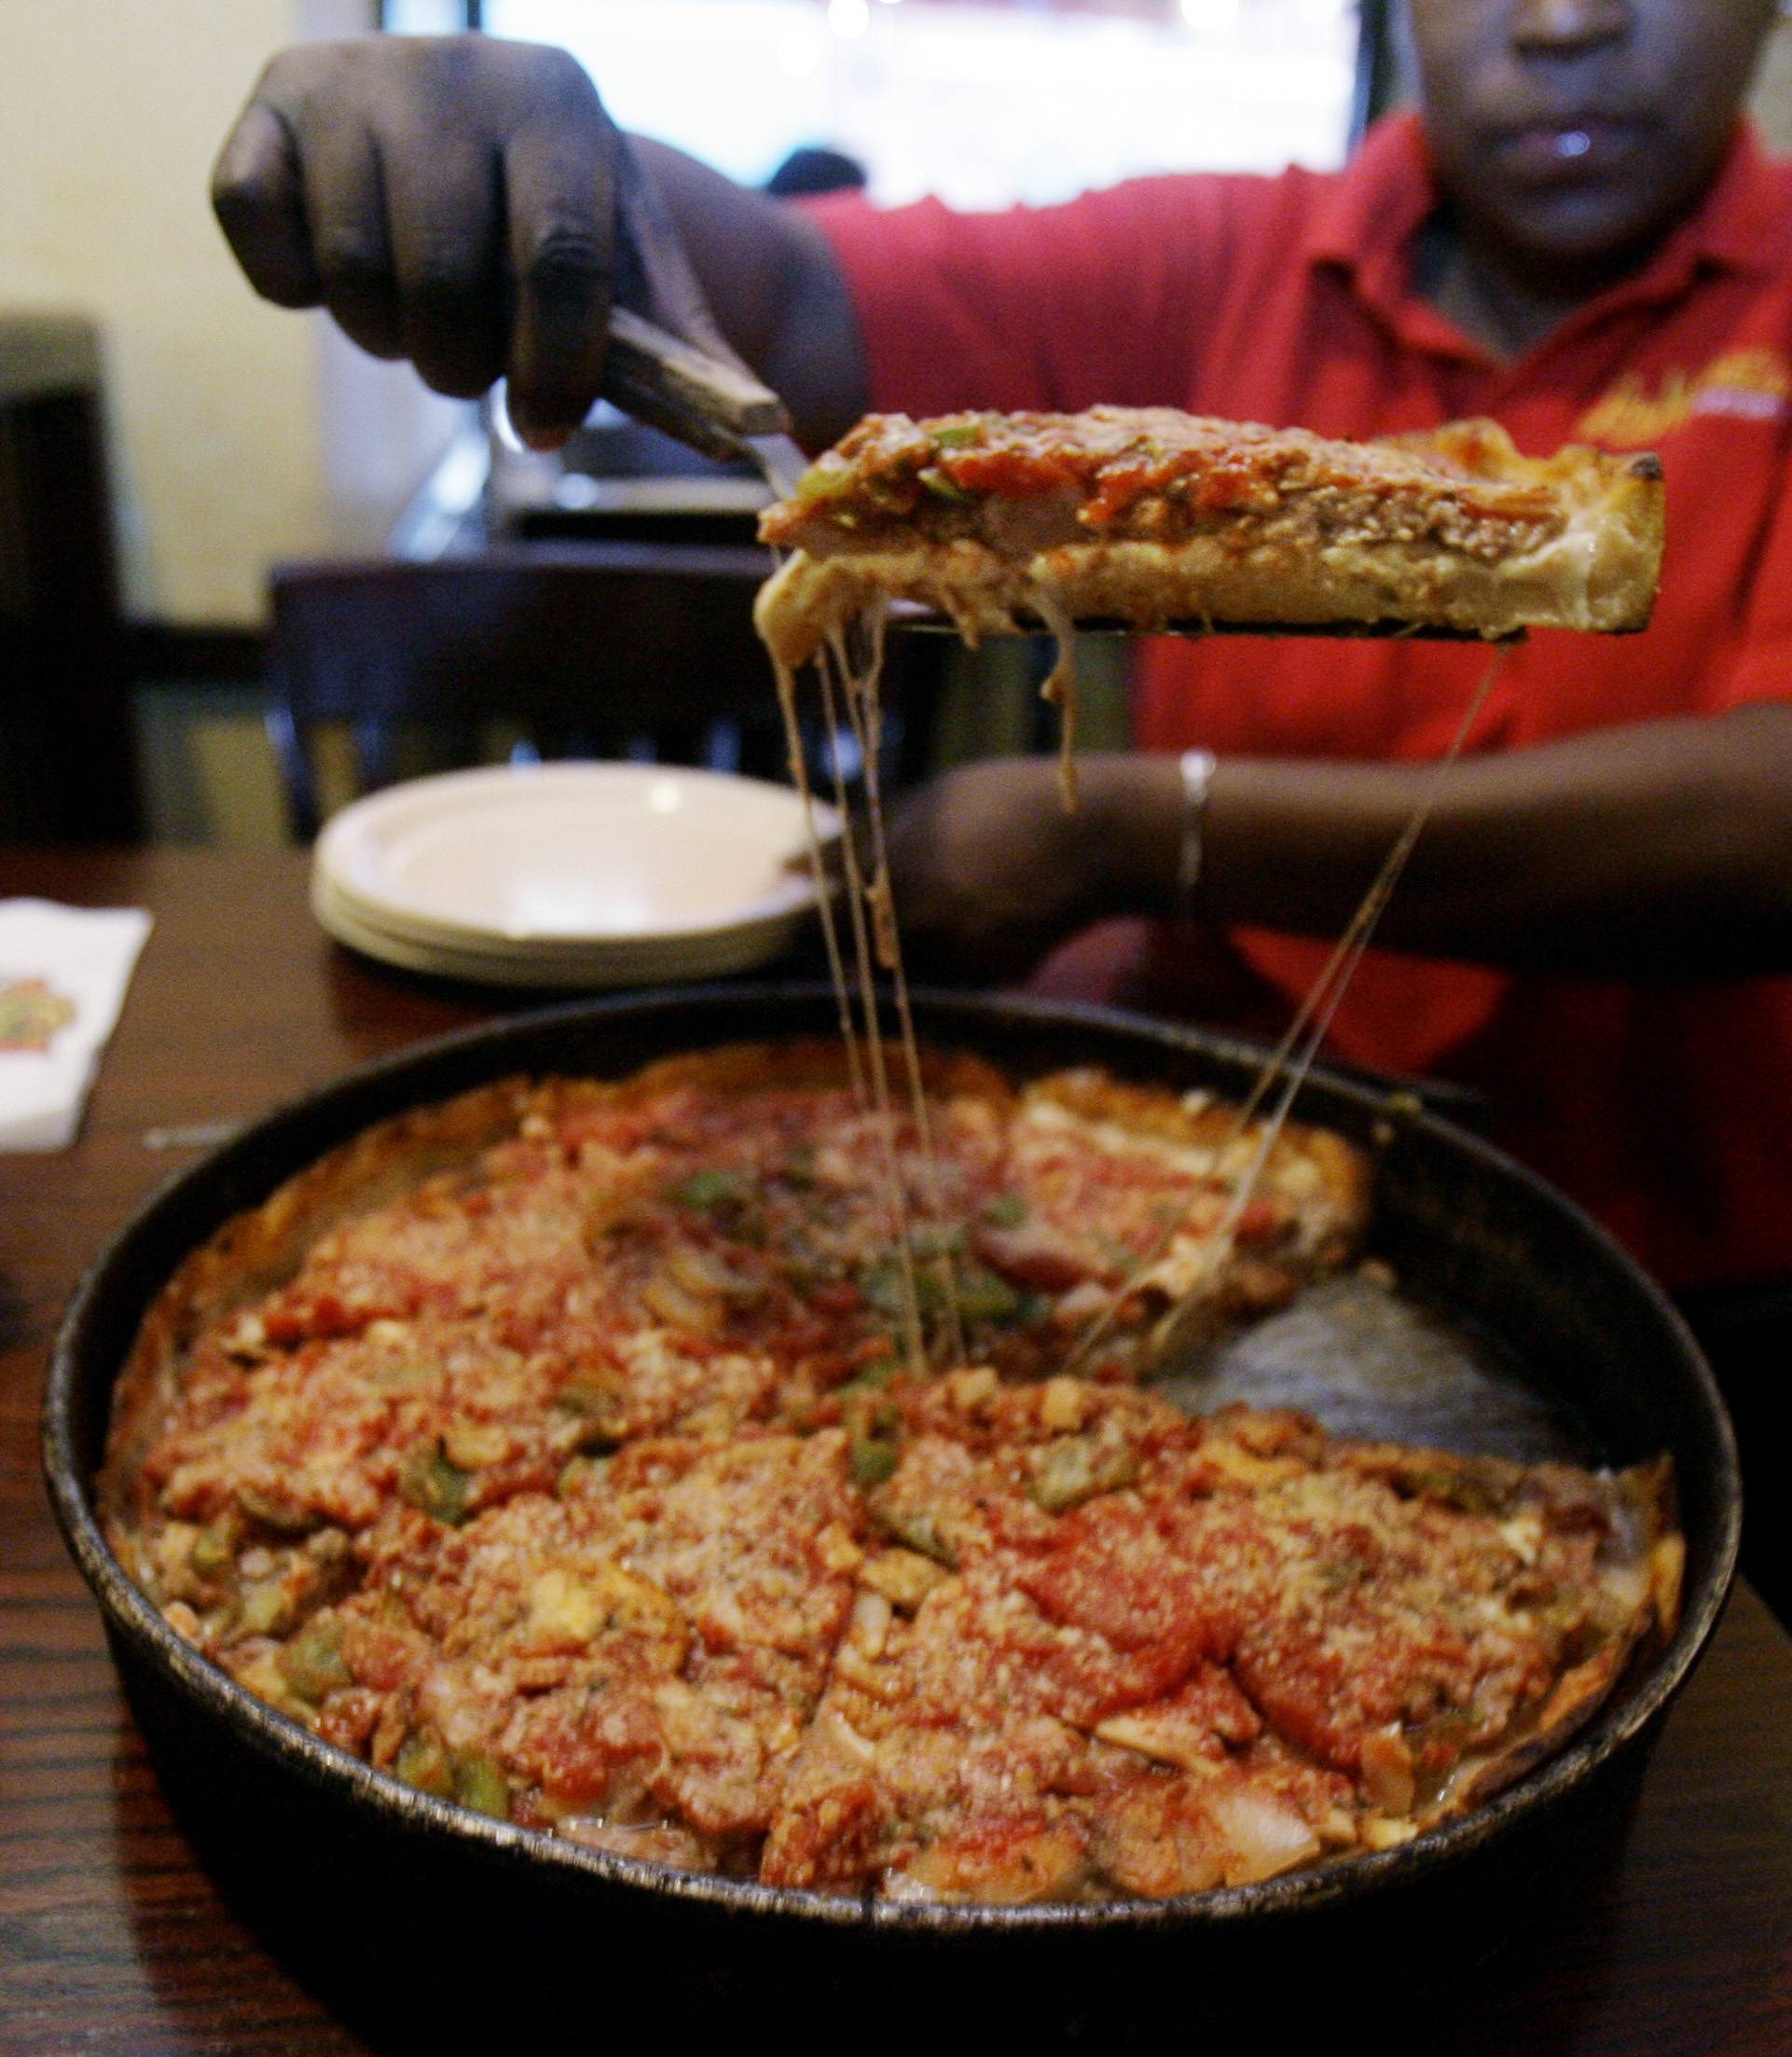 ASSOCIATED PRESS A slice of Lou Malnati's Pizza is served. The 1½ inch thick legendary pie, loaded with sausage, mushrooms, pepperoni, onions was invented in Chicago. New Yorkers prefer flat pizza.